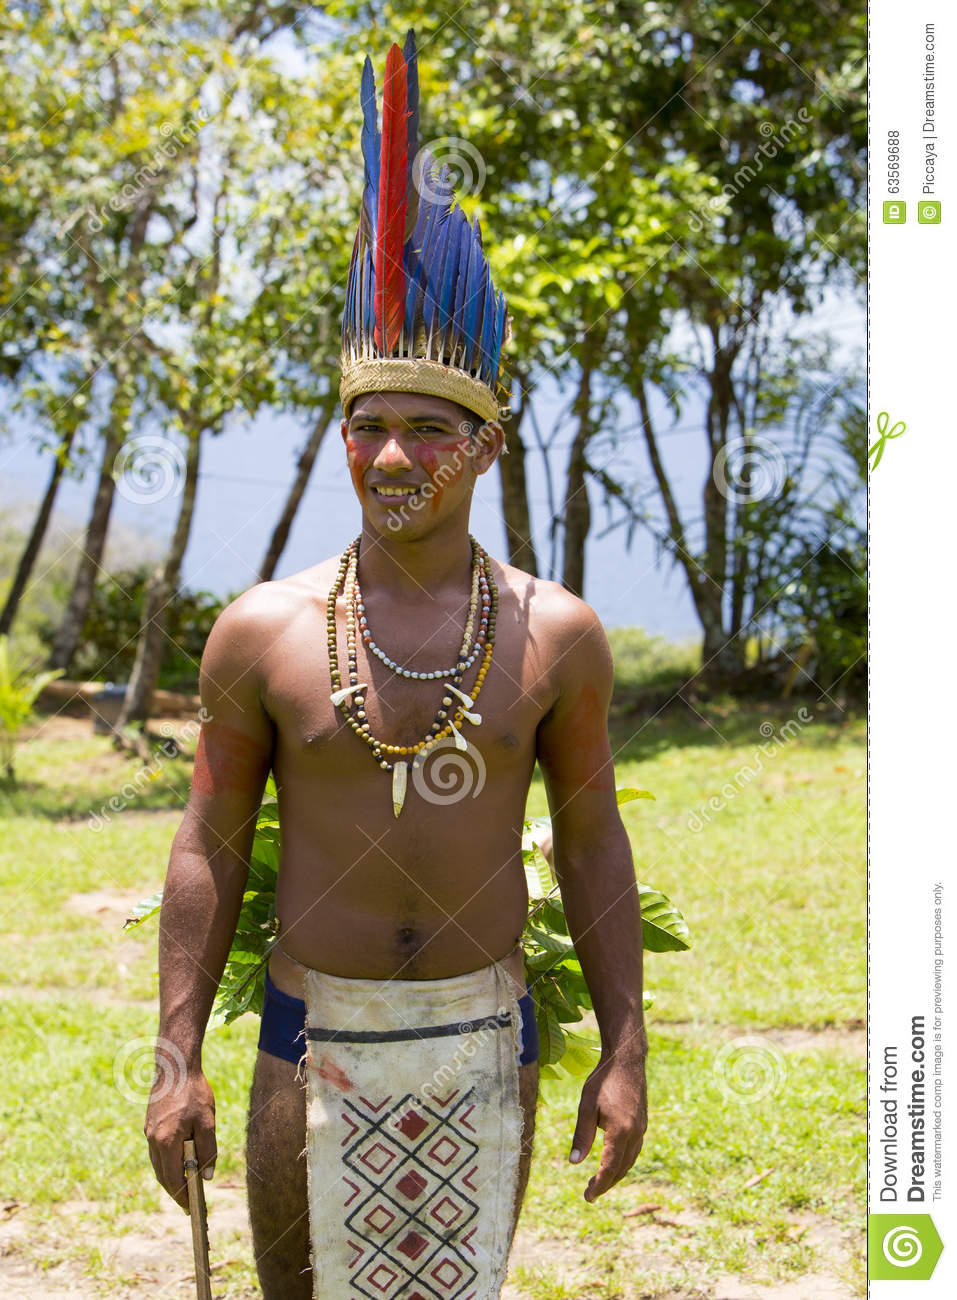 amazonia hindu single men Amazon / engedx couldn't  on a serious note, i don't mind dating american  women i even went on  @op not generalizing but there are indian men and  women who wouldn't marry against their parents wish if you want.